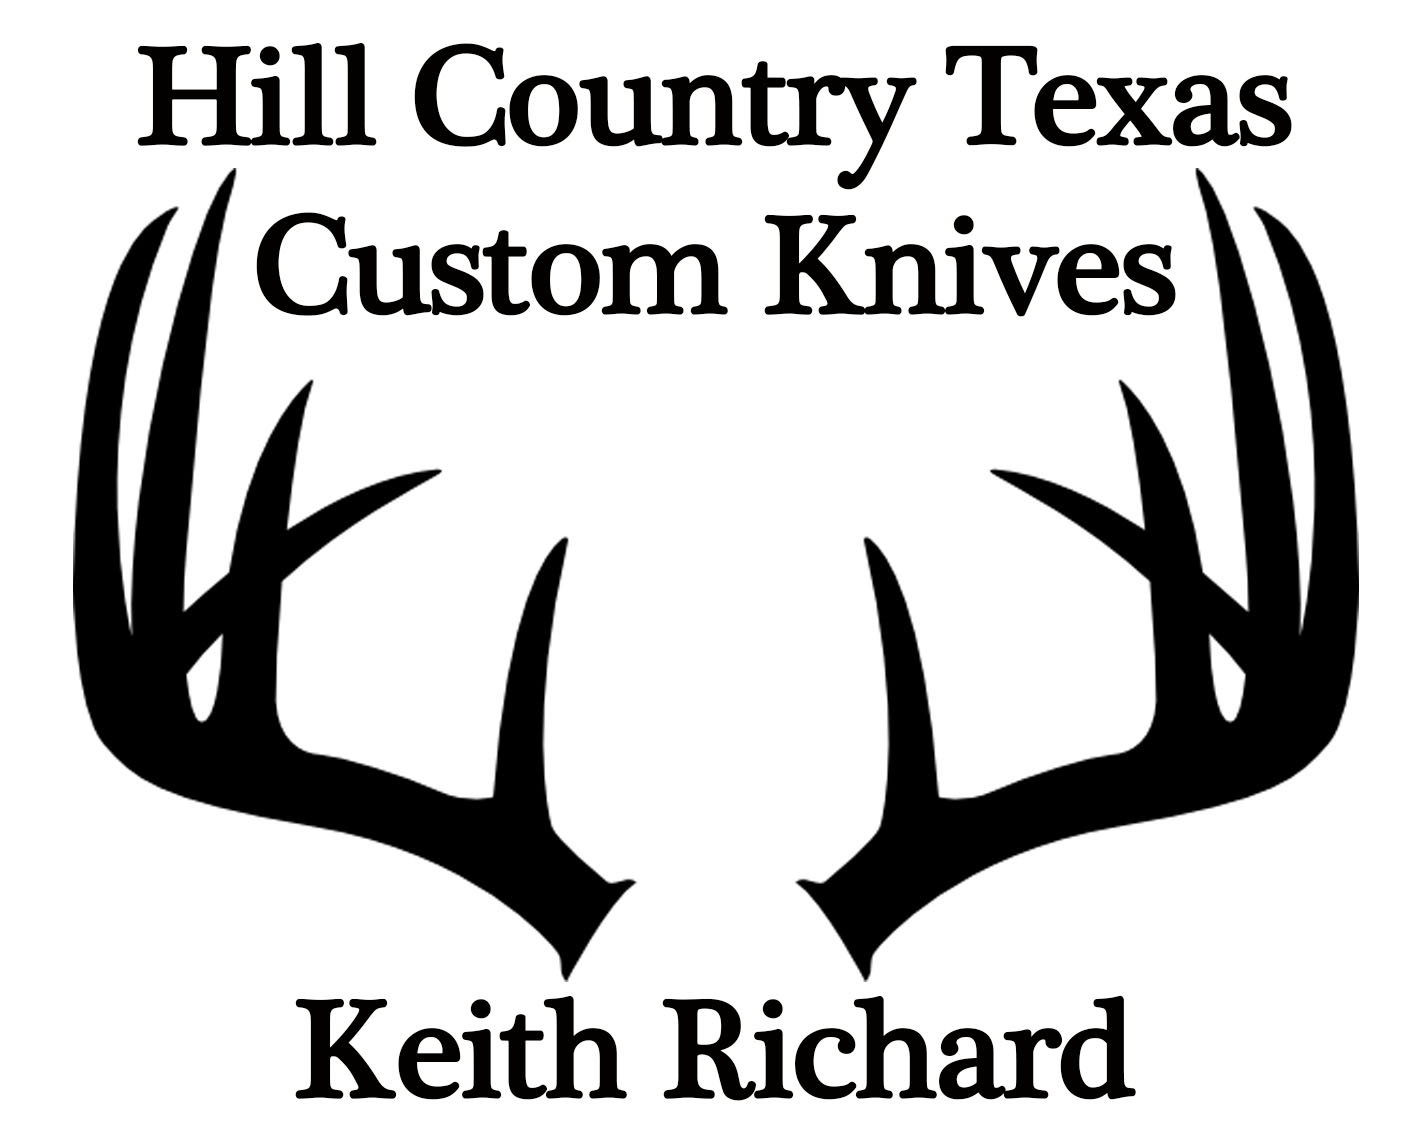 Handmade Custom Knives by Keith Richard